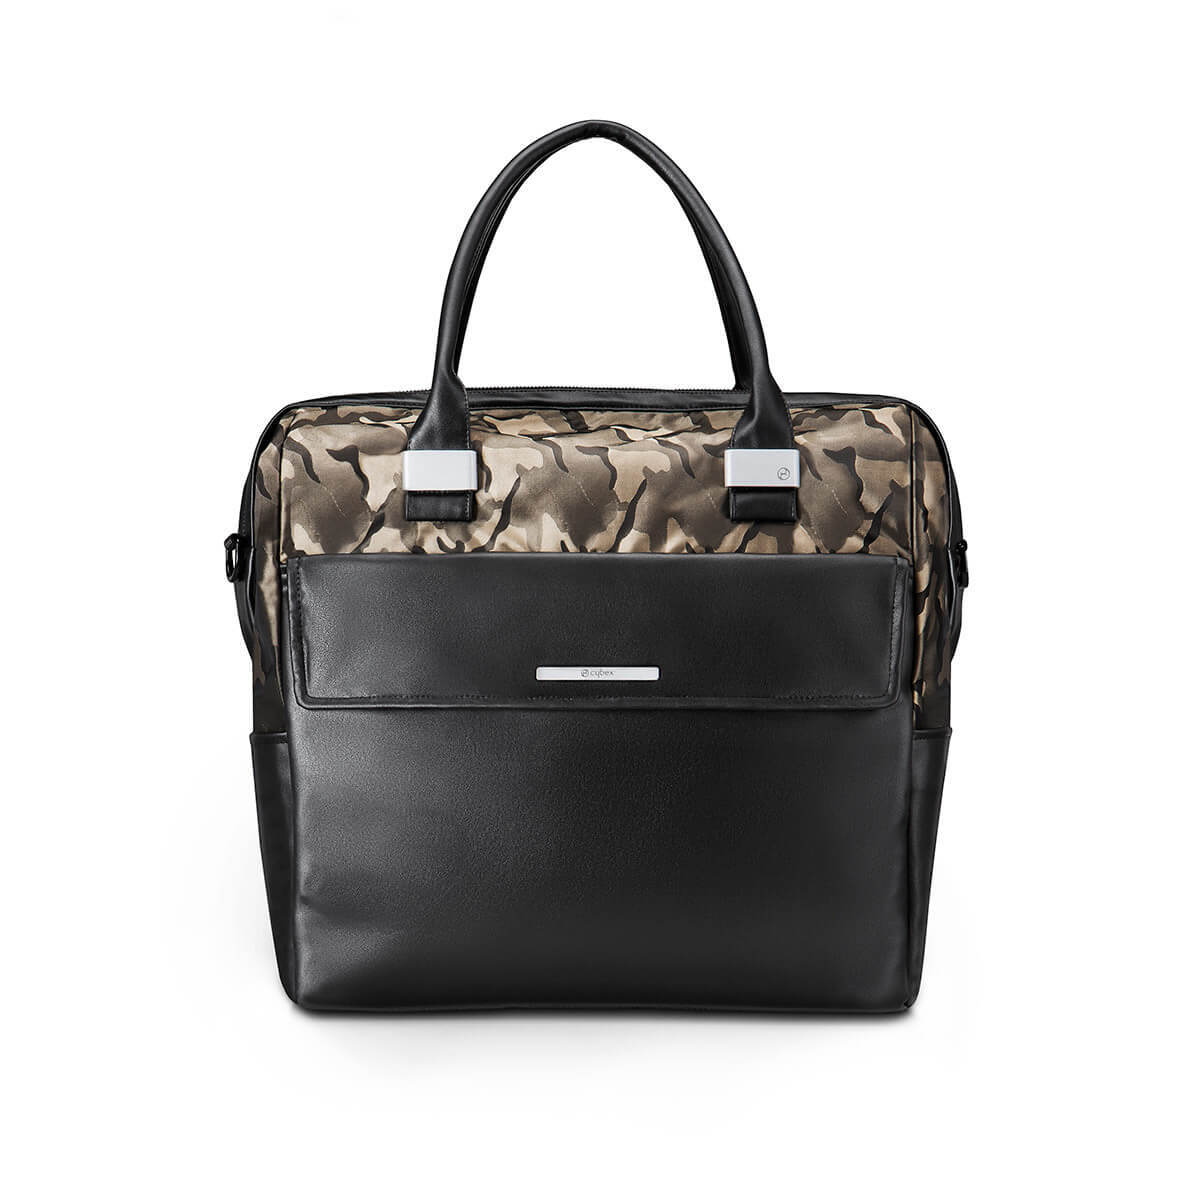 Сумки для колясок Cybex Balios M Сумка для коляски Cybex Priam Changing Bag Butterfly Priam_Fashion_Collection_Changing_Bag_butterfly.jpg